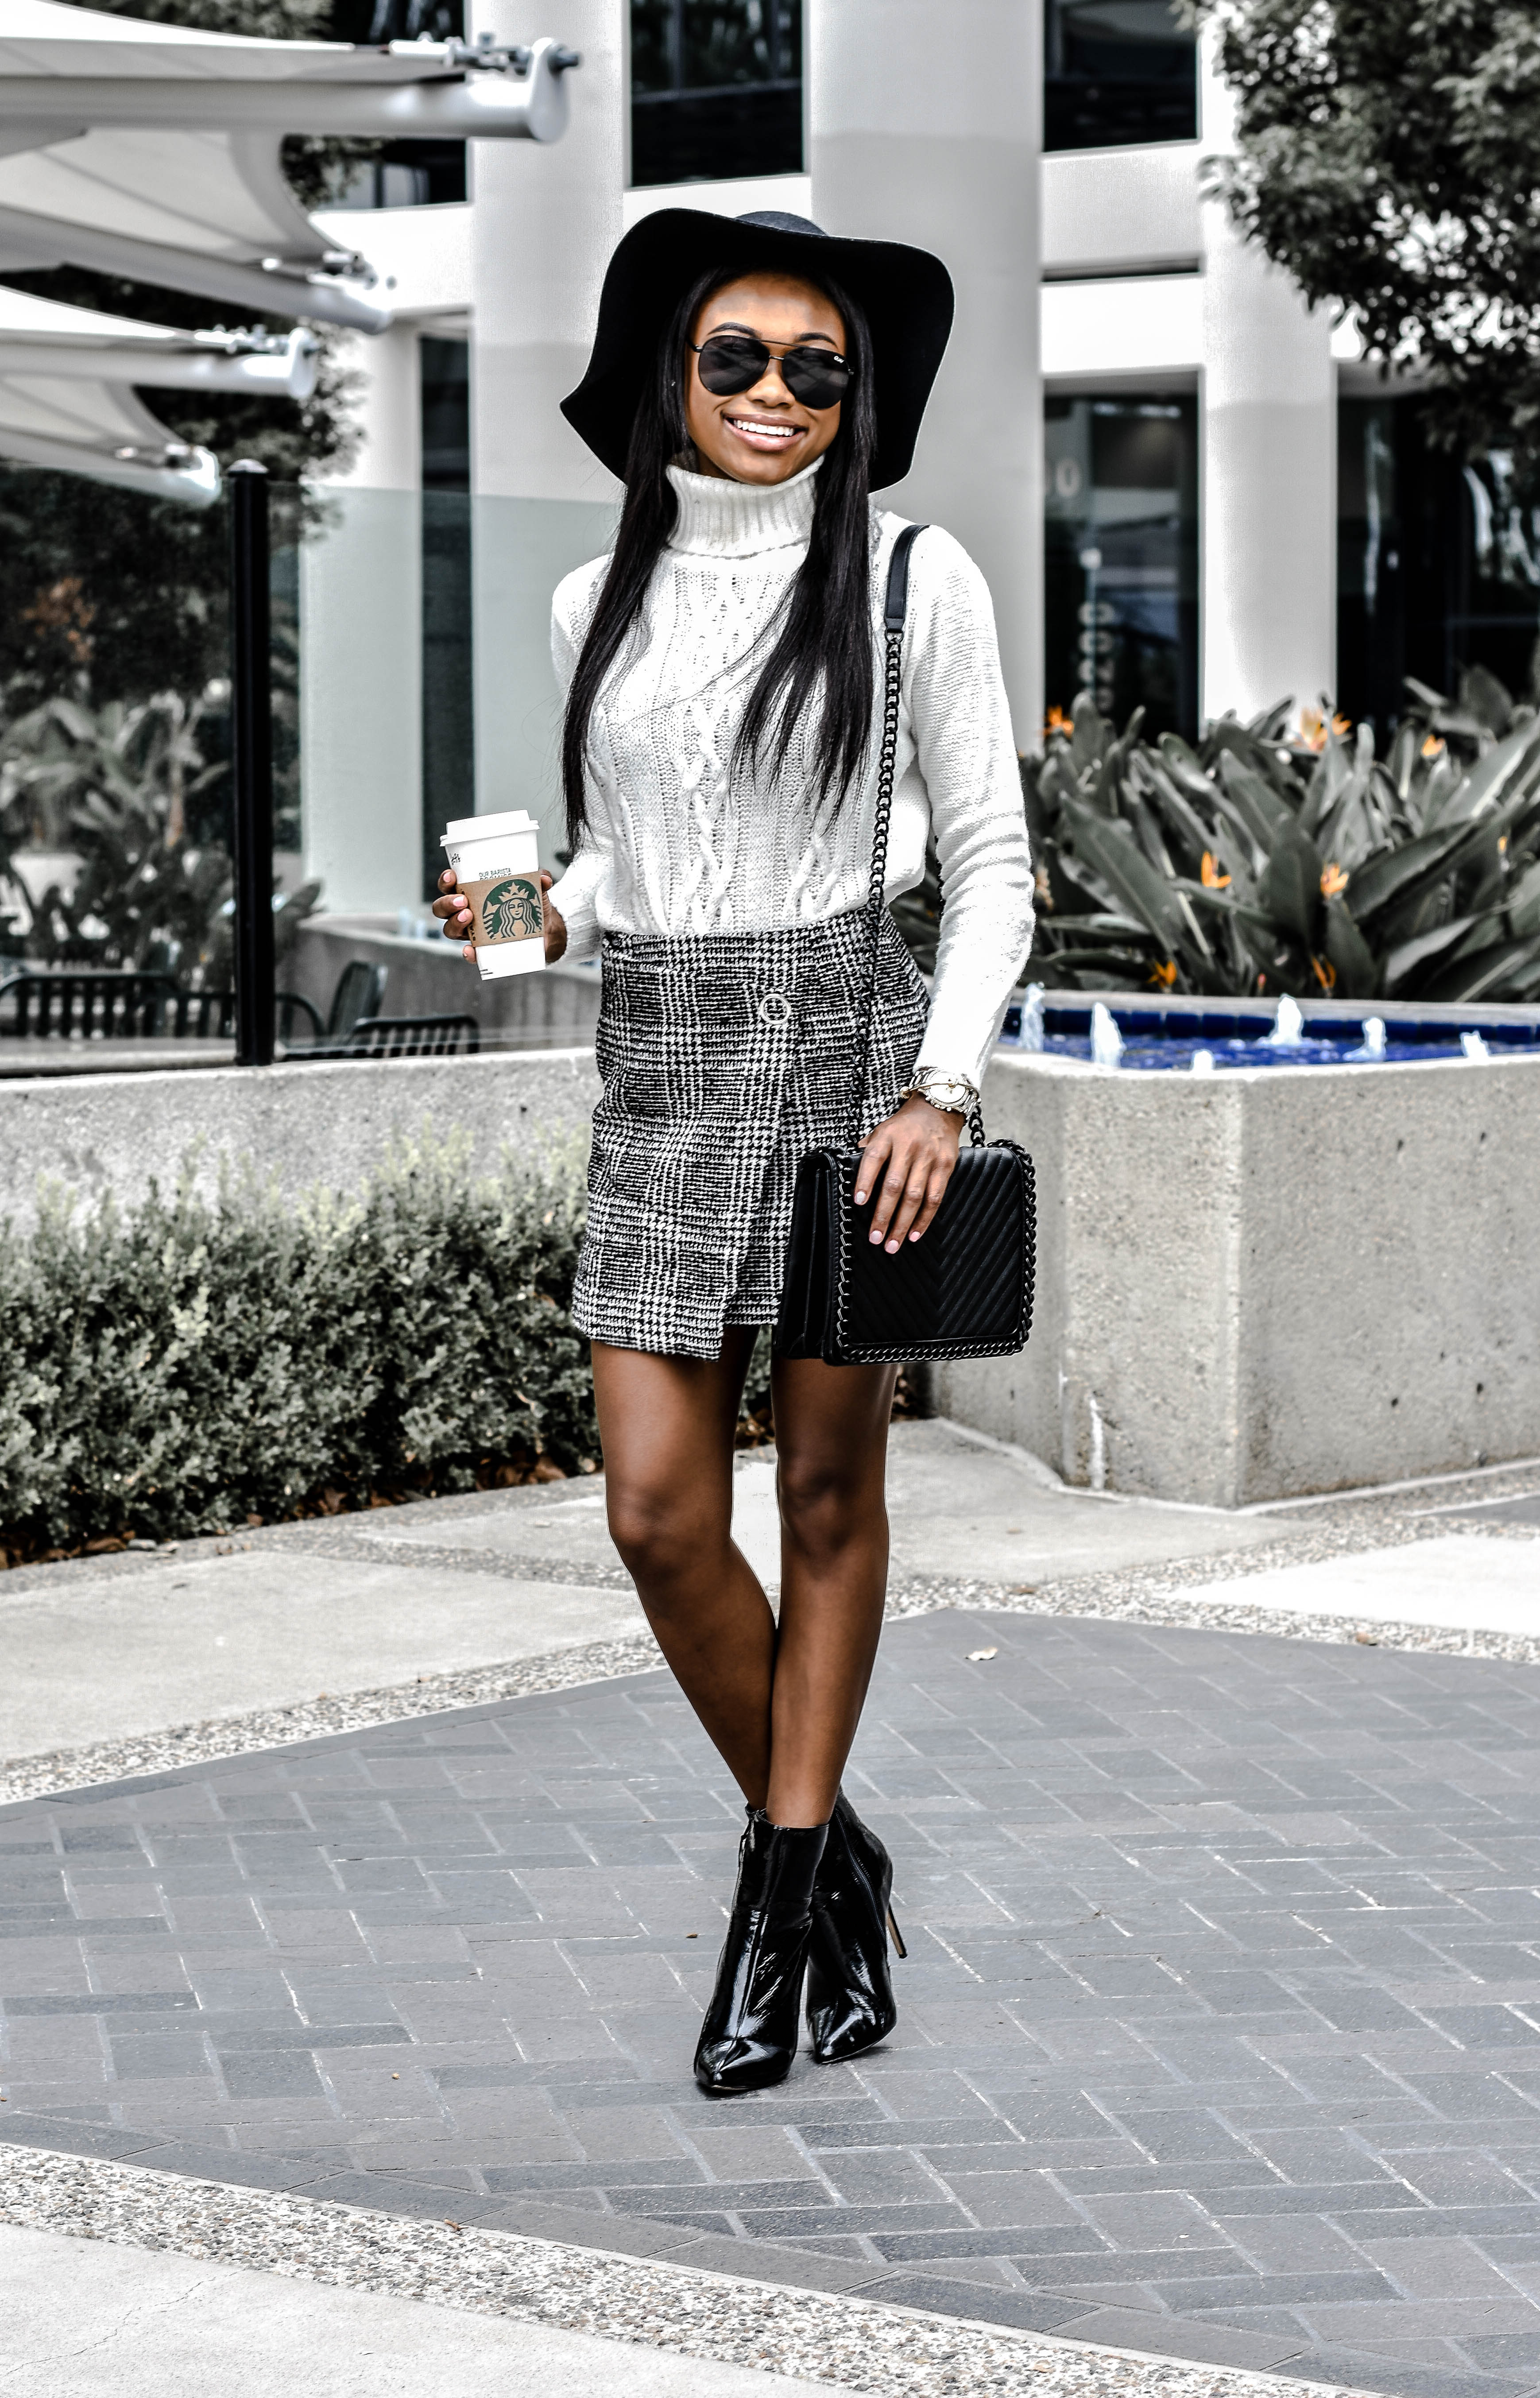 Plaid Skirt and White Knit Sweater for Winter